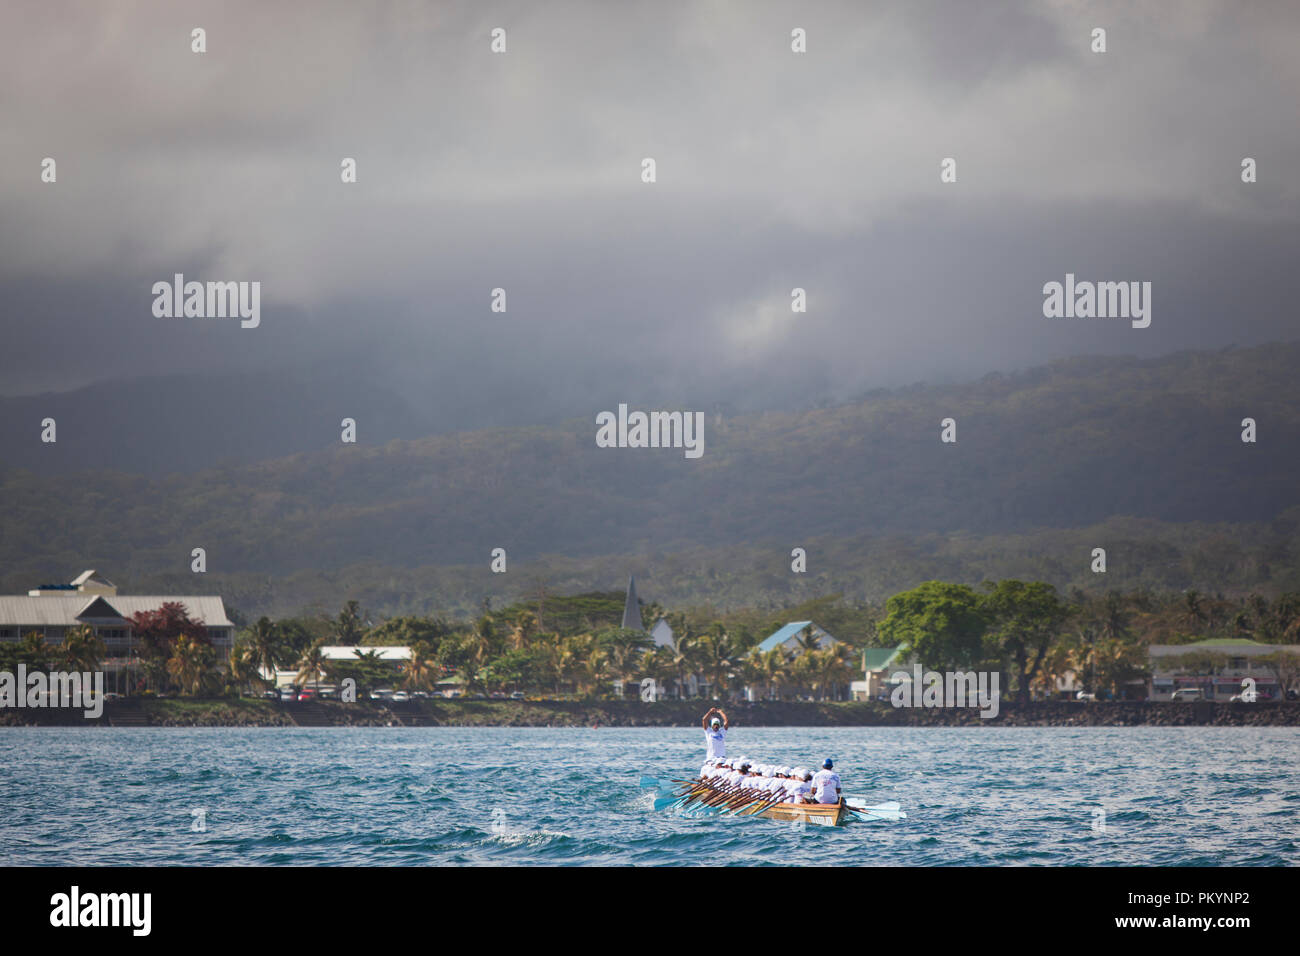 A fautasi (longboat) racing at full speed during the Fautasi Ocean Challenge 2012 (part of Teuila Festival). - Stock Image